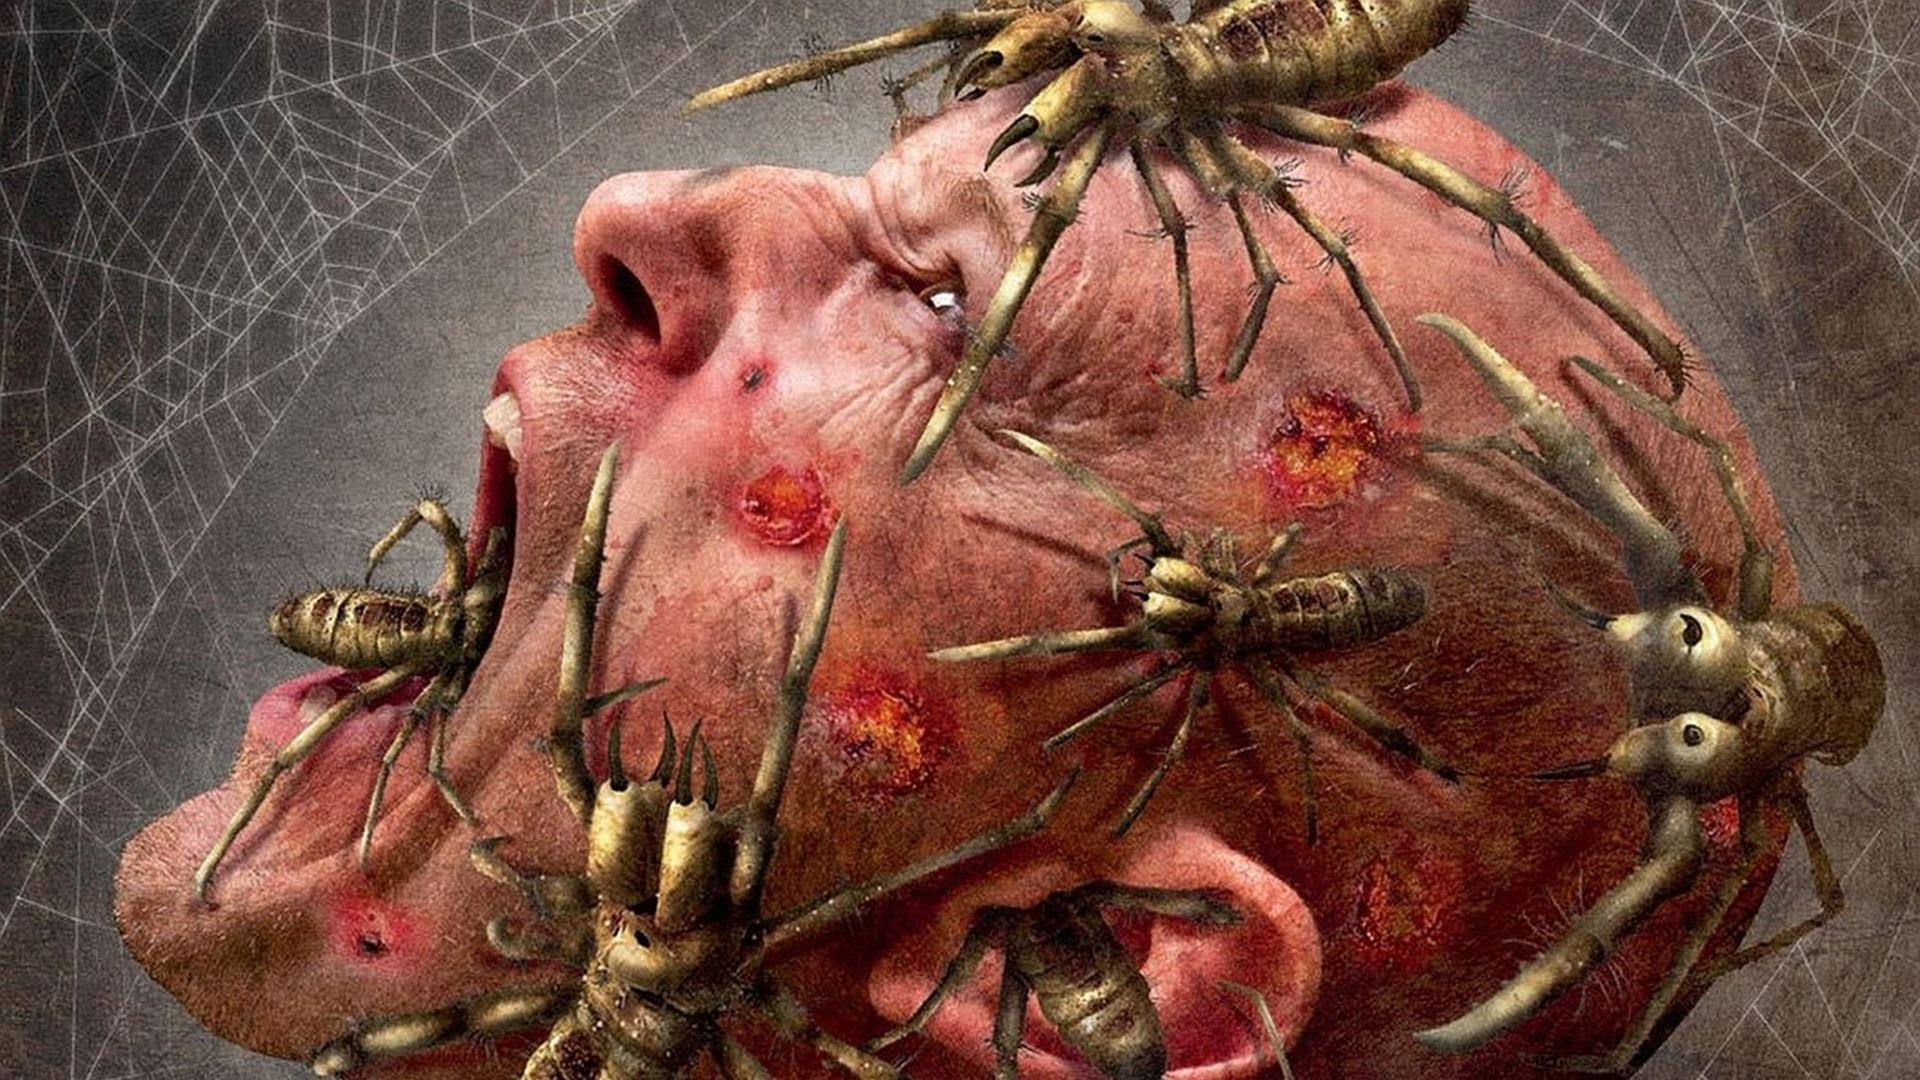 15 Creepiest Spiders in Video Games – YouTube